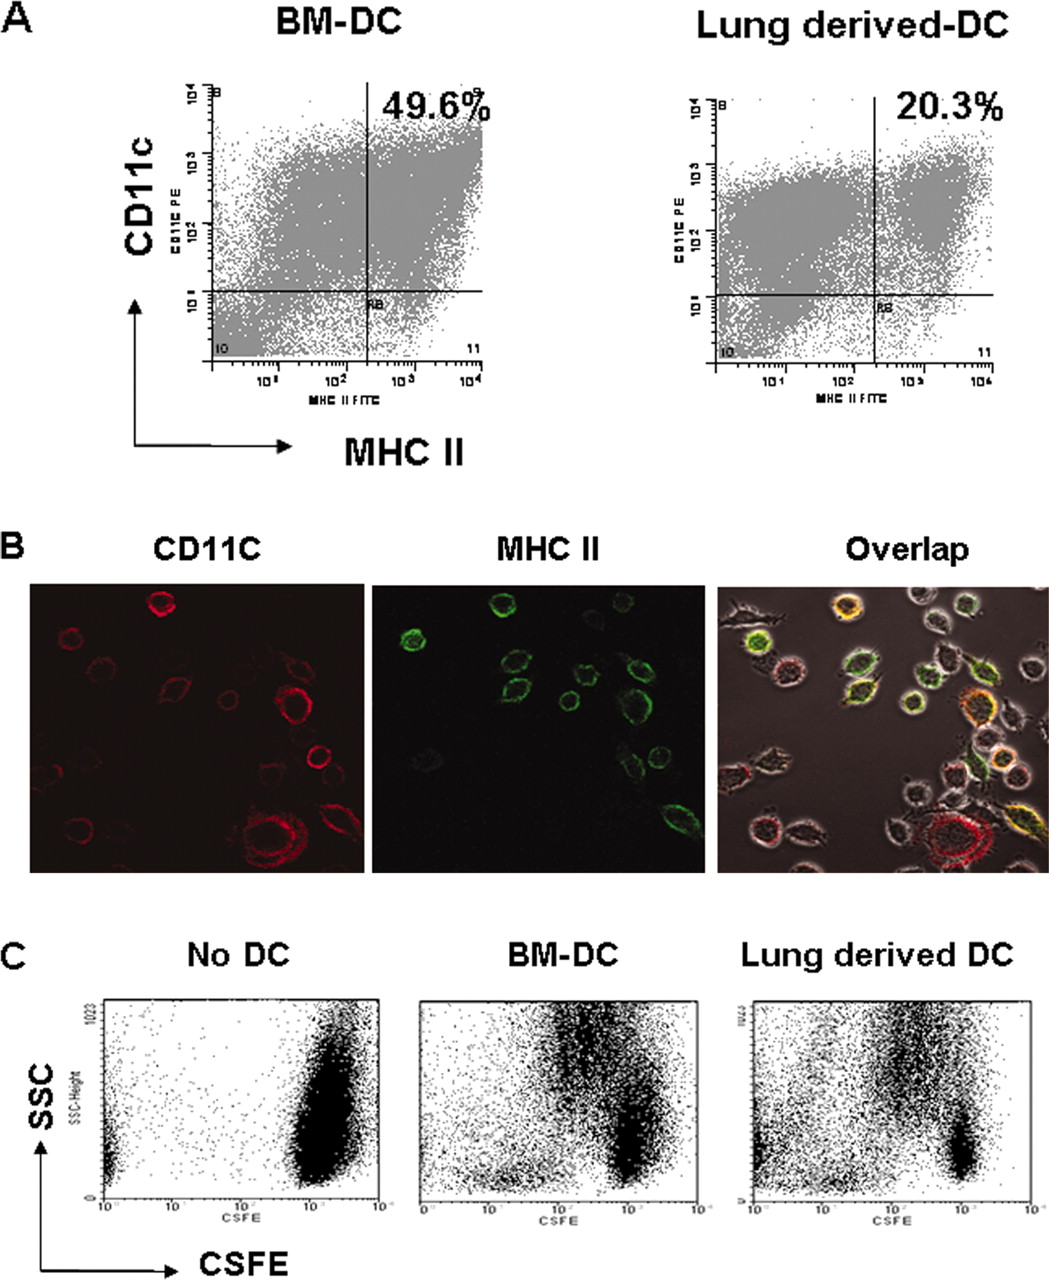 Local Cd11c Mhc Class Ii Precursors Generate Lung Dendritic Cells Wiring Diagram Dashed Line Download Figure